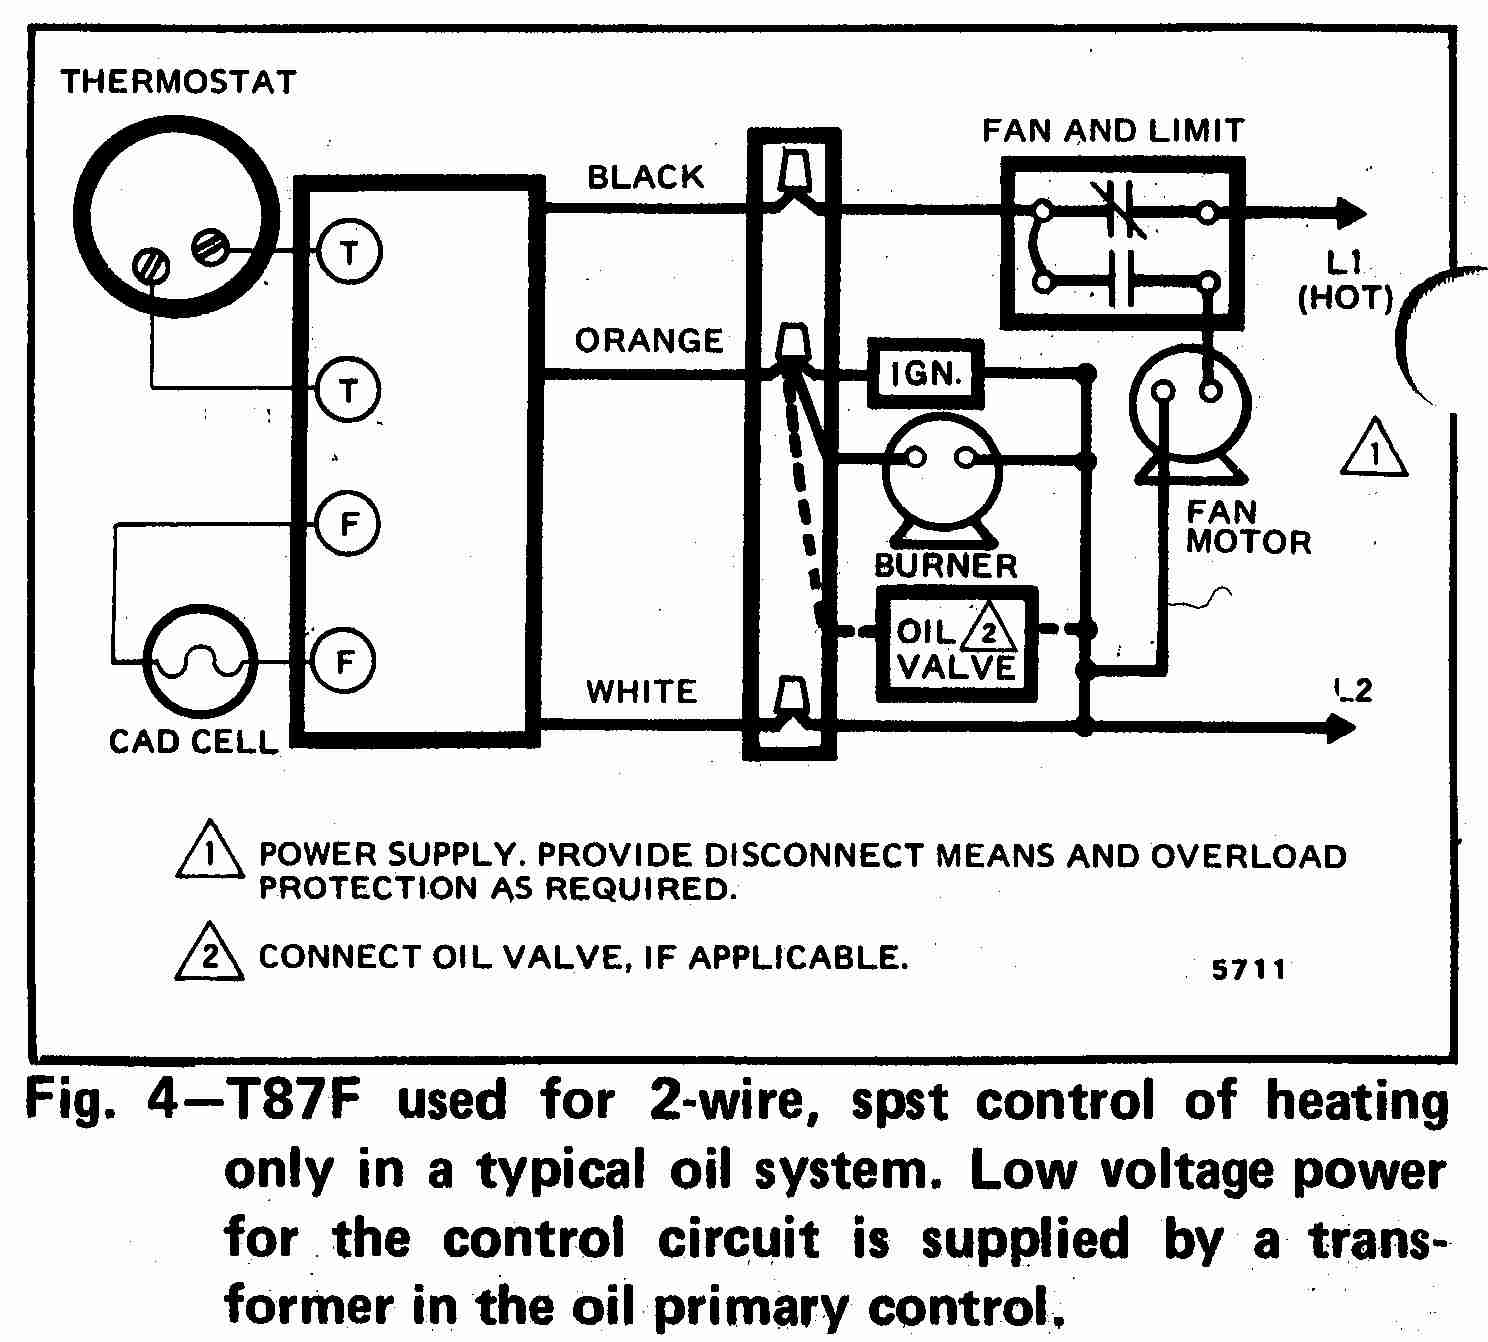 TT_T87F_0002_2W_DJF room thermostat wiring diagrams for hvac systems hvac control panel wiring diagrams at honlapkeszites.co